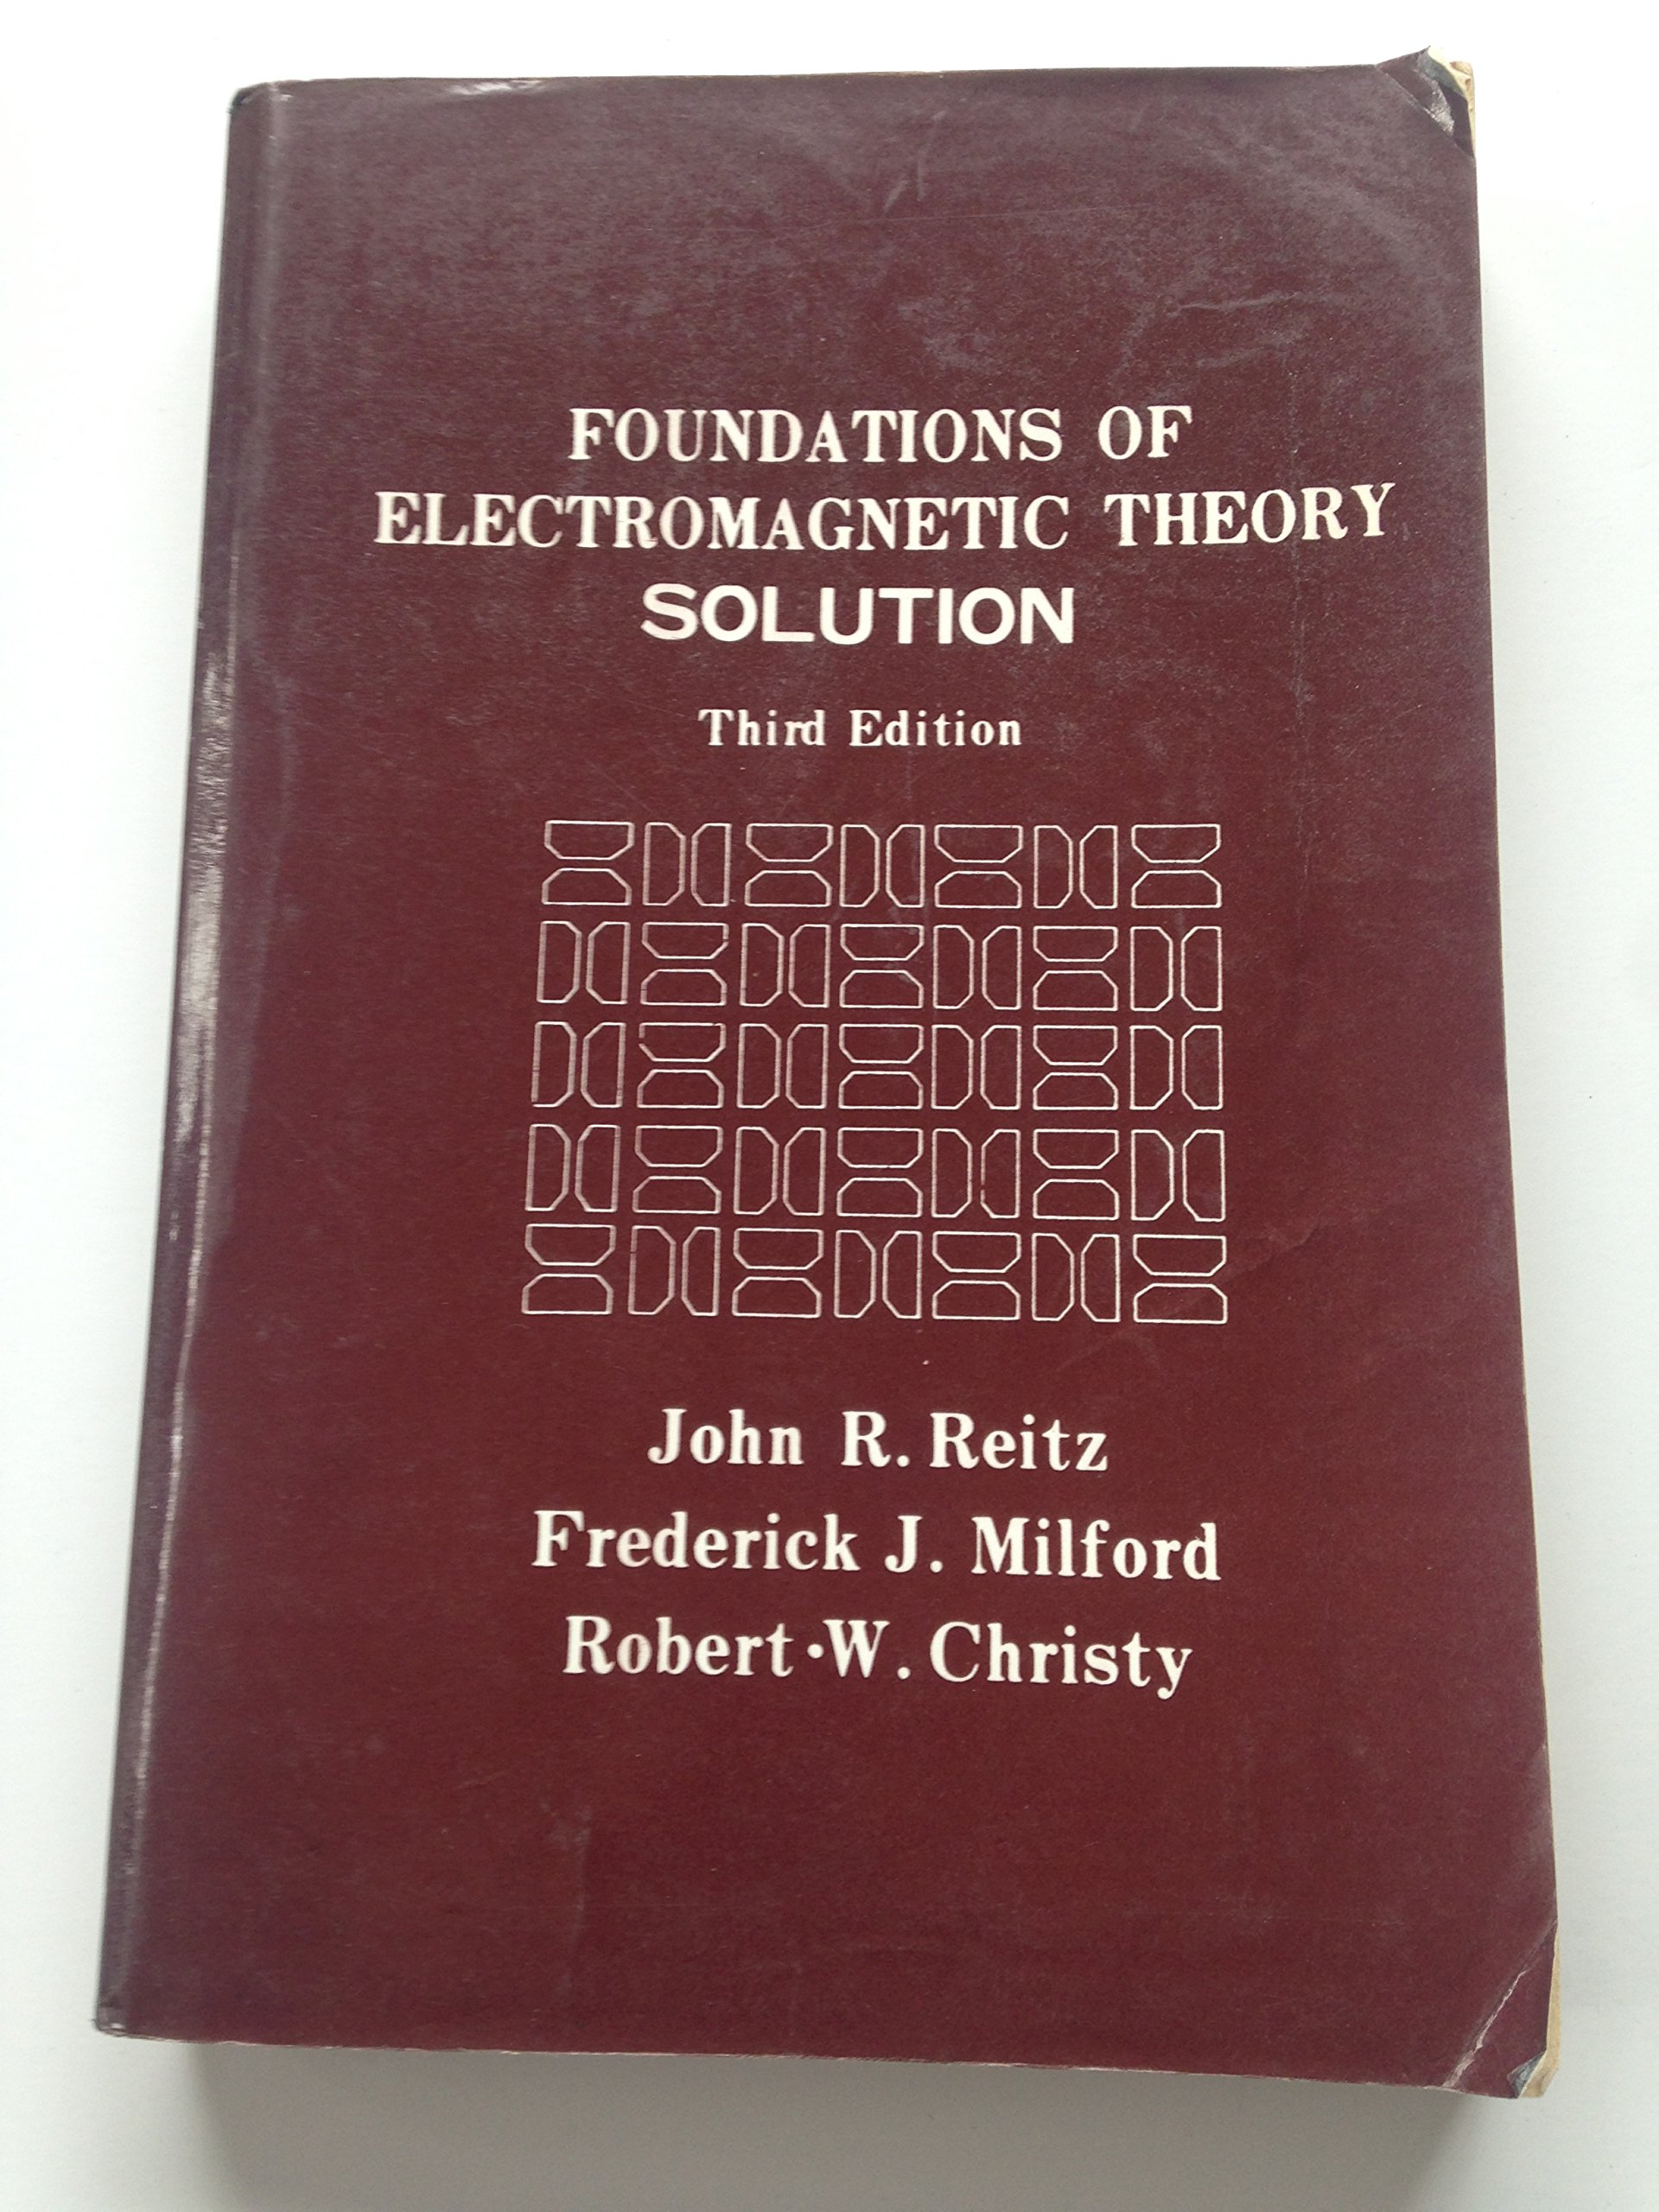 Solutions Manual to Foundations of Electromagnetic Theory third edition 3e:  John R. Reitz, Frederick J. Milford, Robert W.Christy: Amazon.com: Books